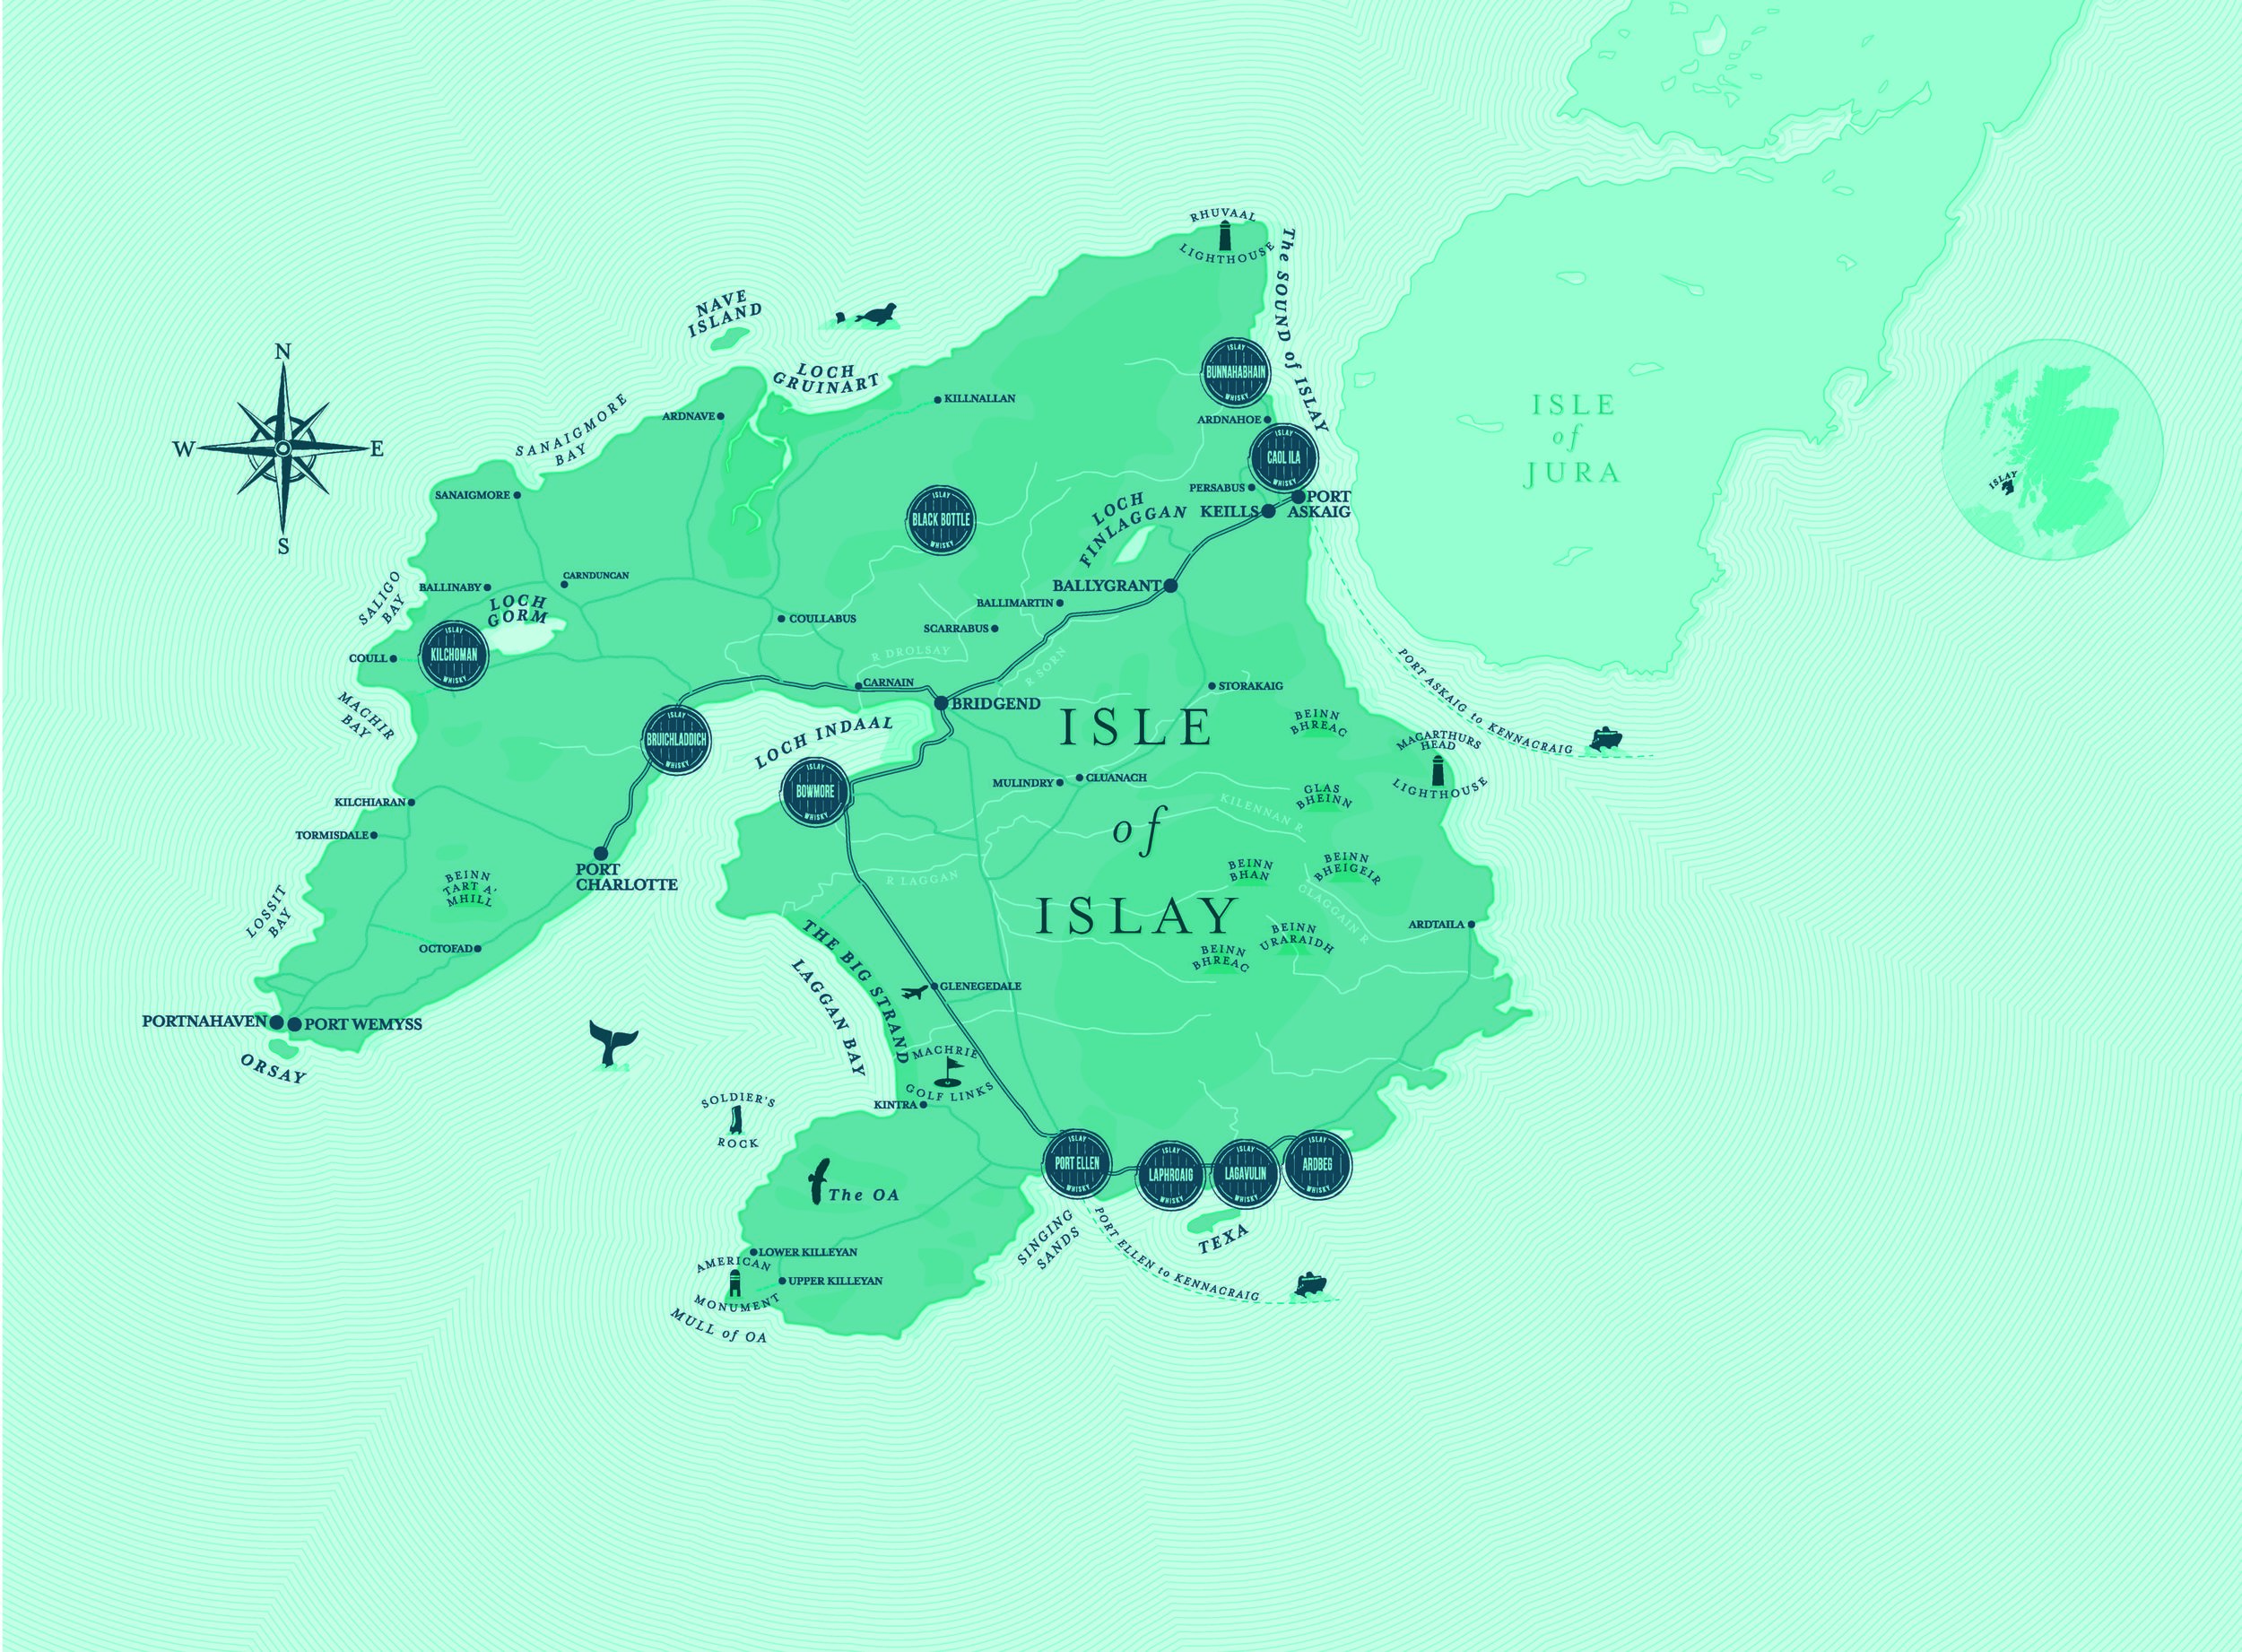 Redlands_Islay map_AW V3.jpg